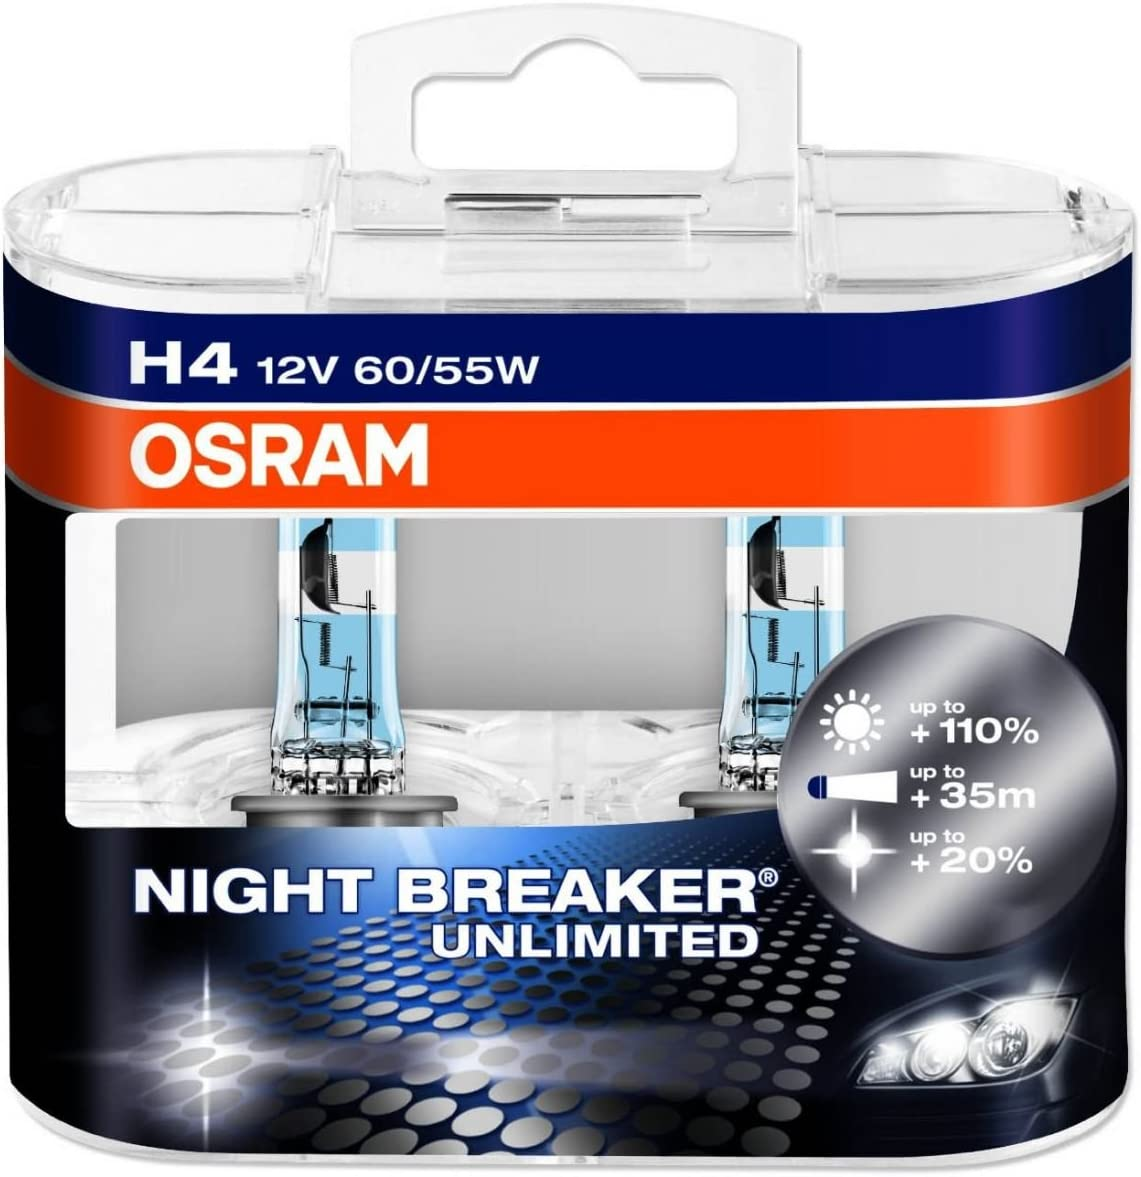 Pair Of Osram Night Breaker Bulbs Headlamp Nightbreaker Unlimited Headlight